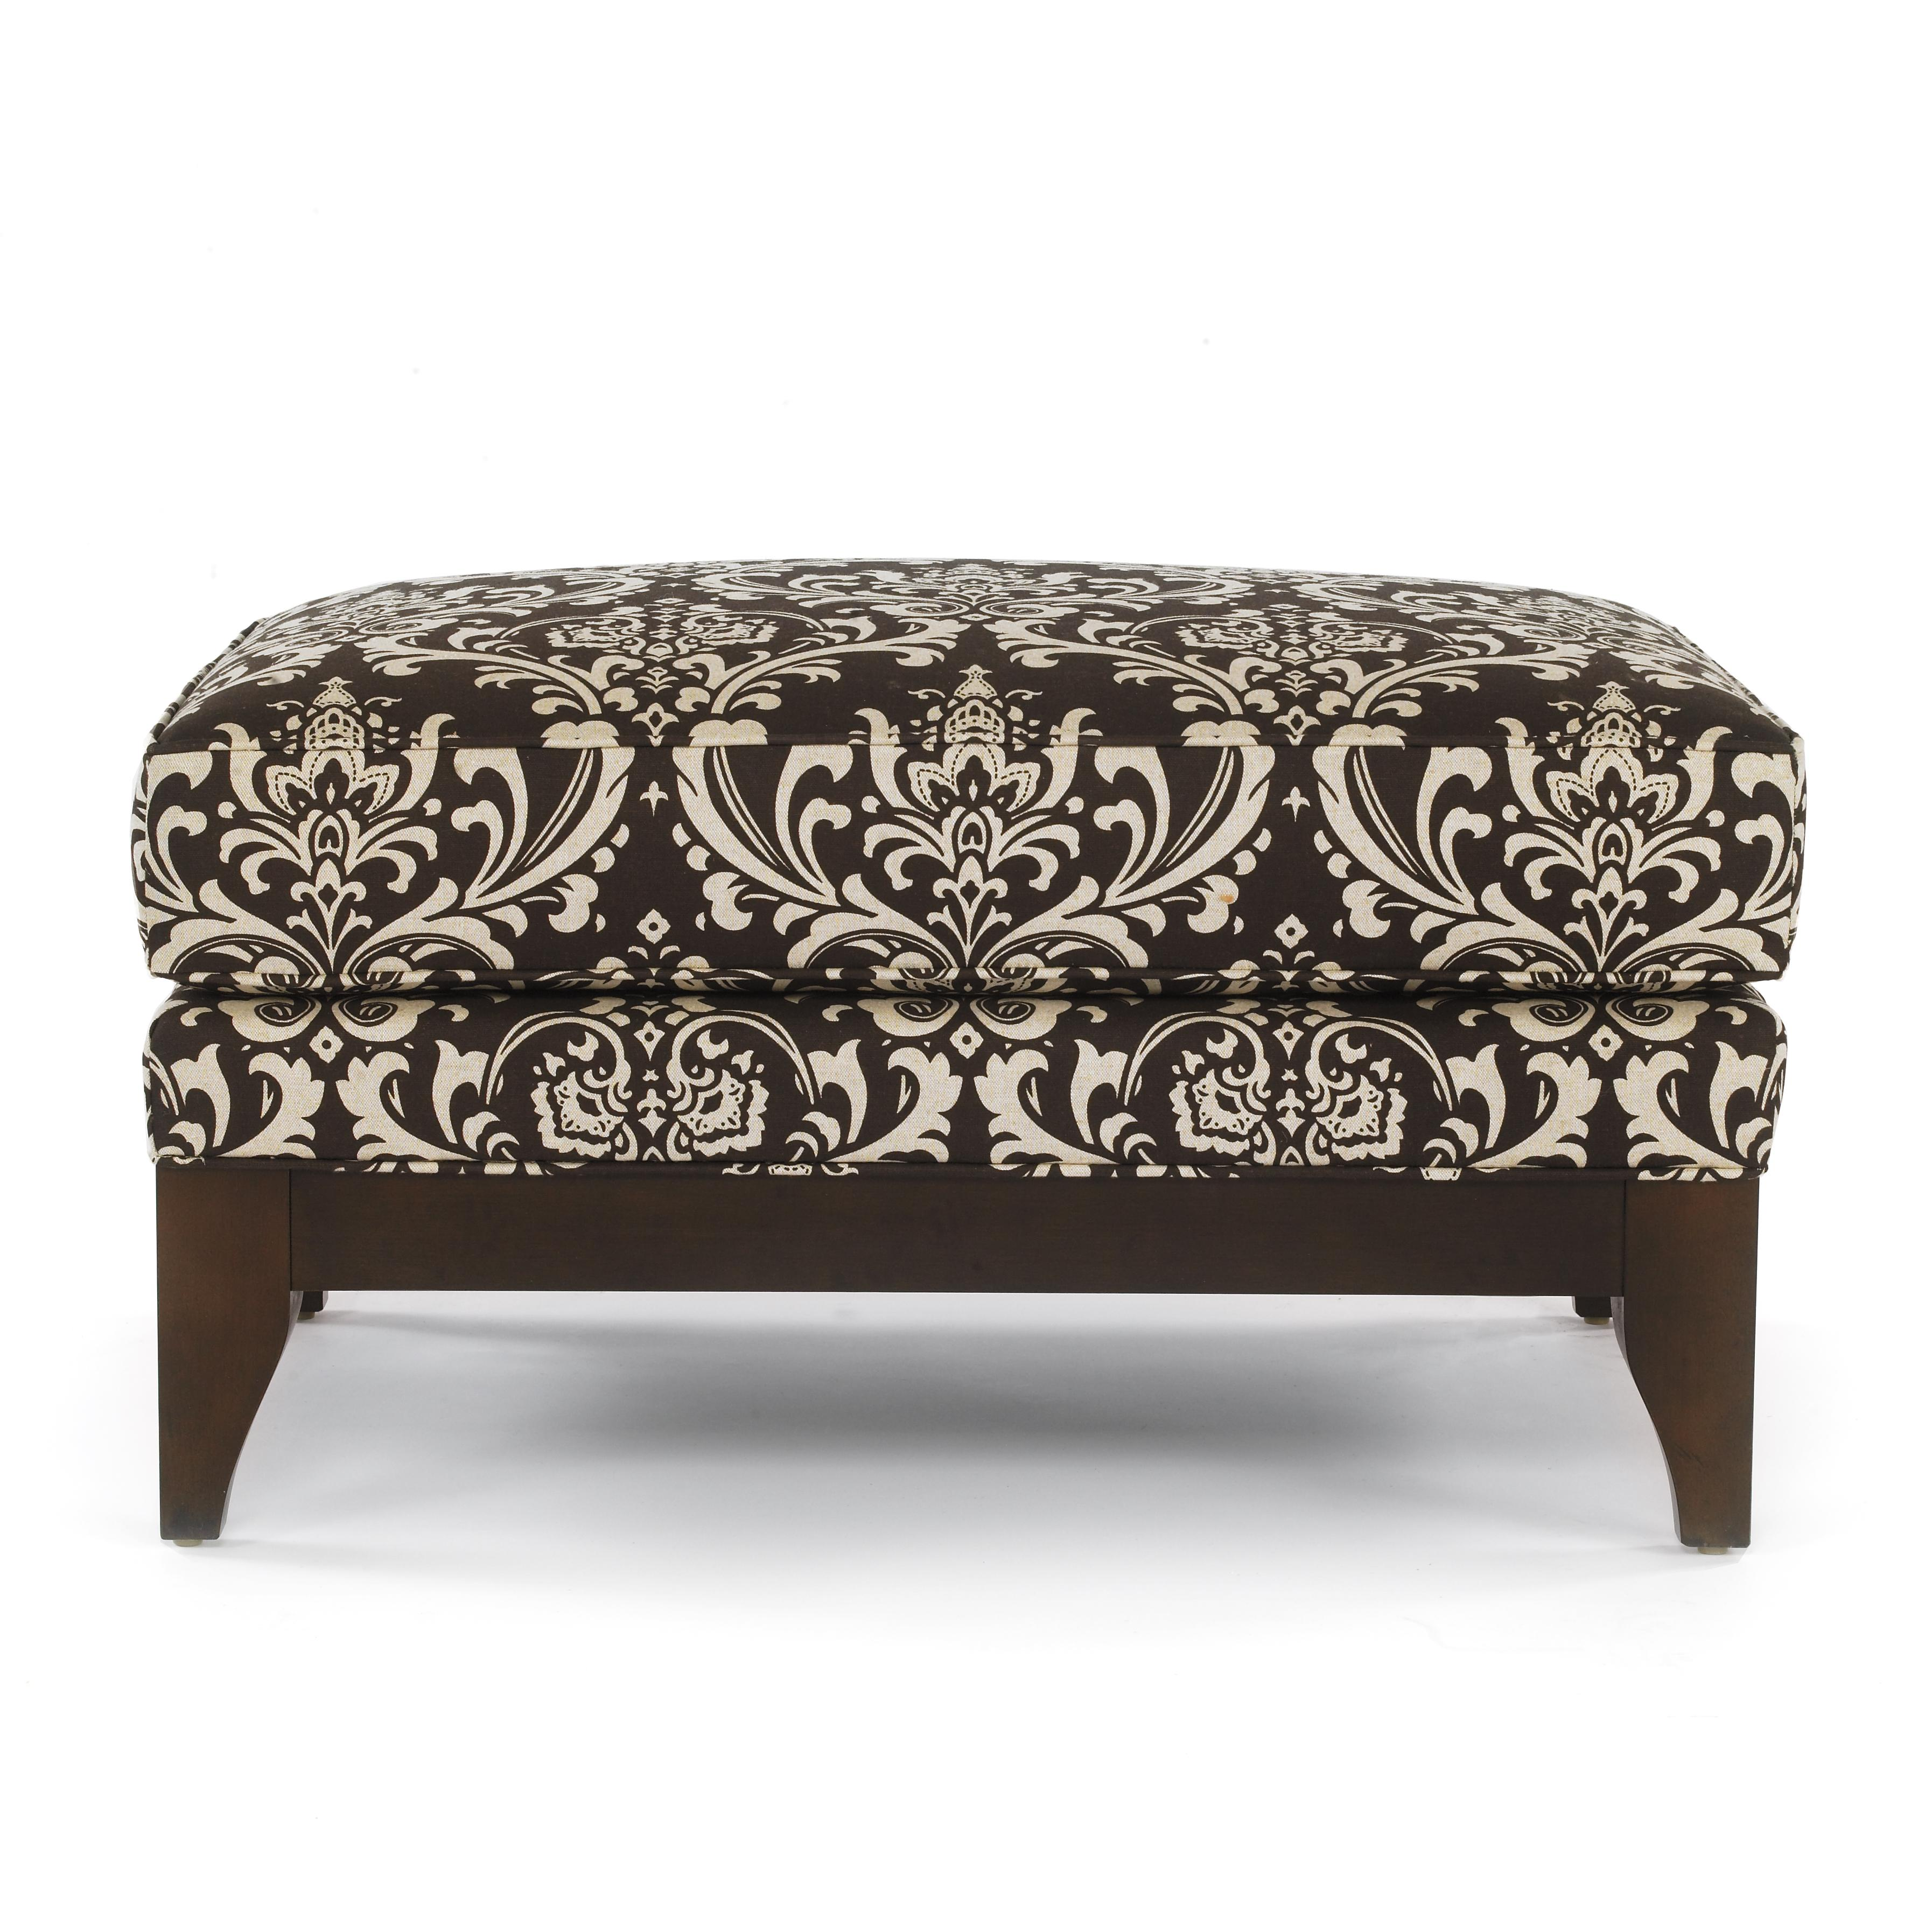 Alston Ottoman by Kincaid Furniture at Stuckey Furniture